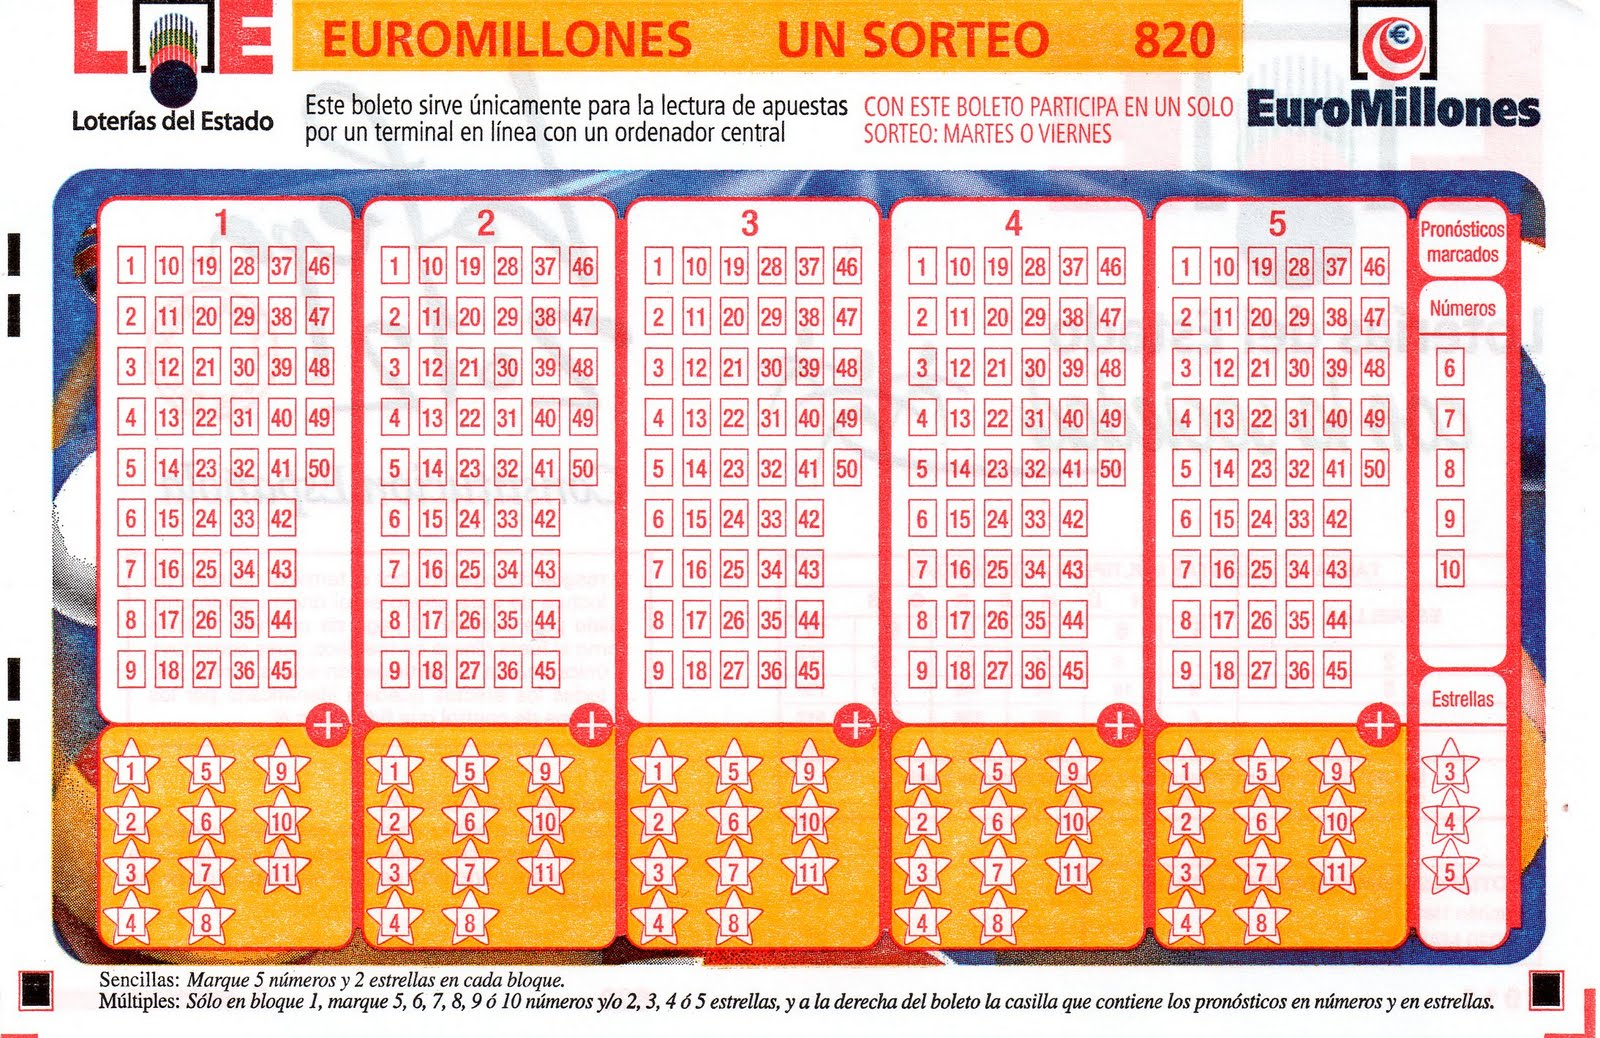 Benidorm all year round.: EuroMillions Lottery - play in Benidorm